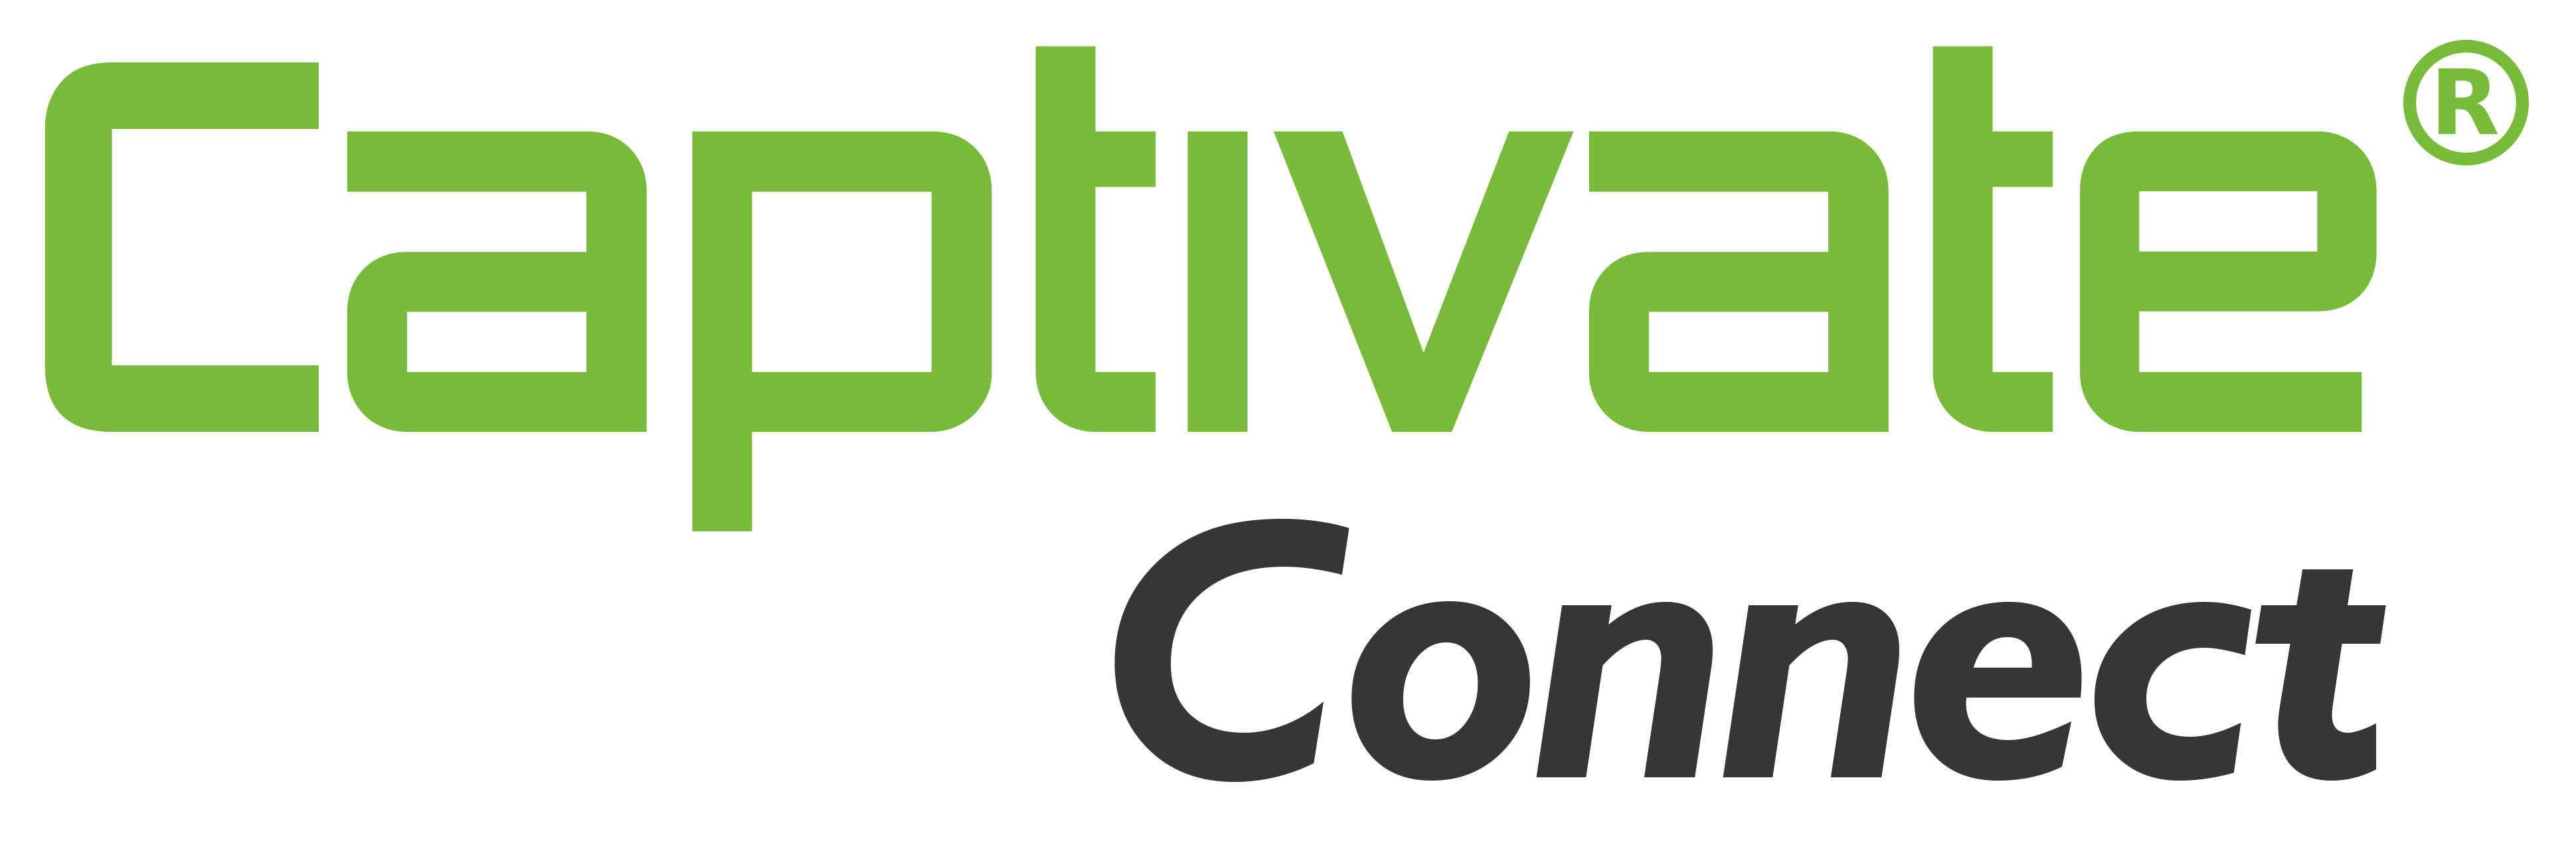 Captivate Connect logo